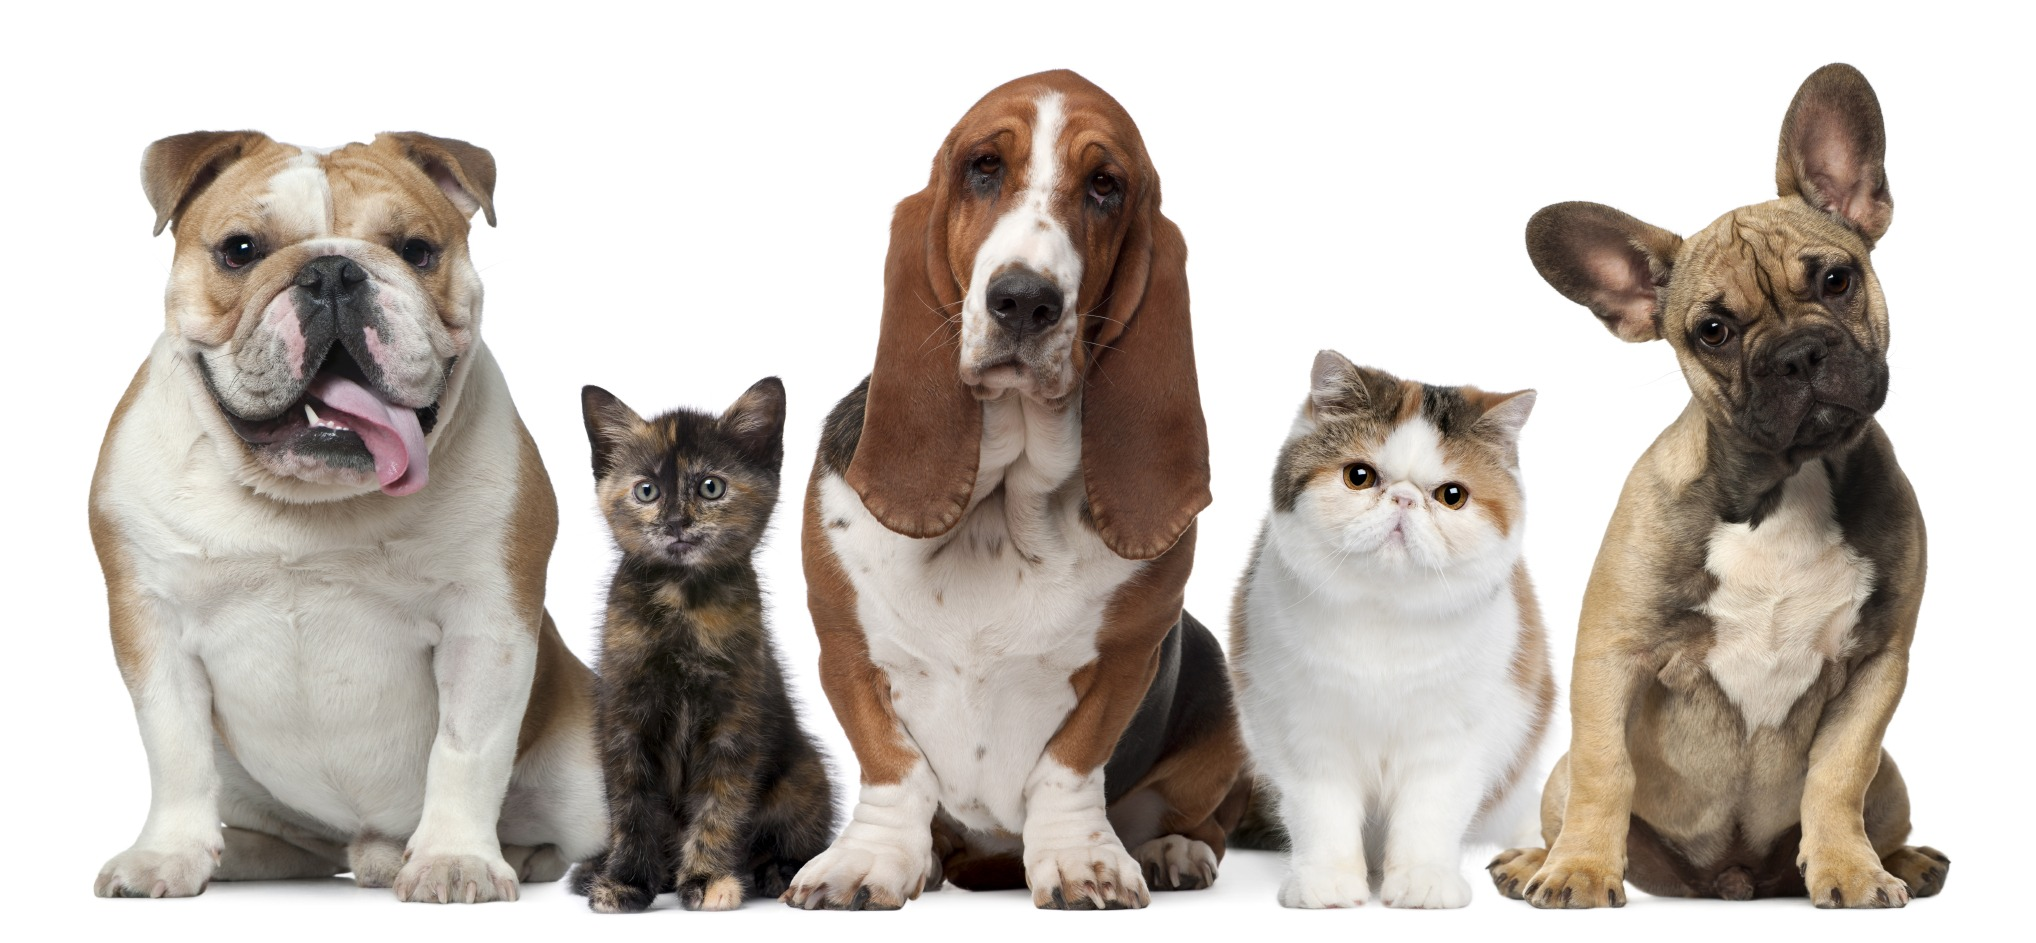 Weekly Economic News Roundup and puppy pandemic demand